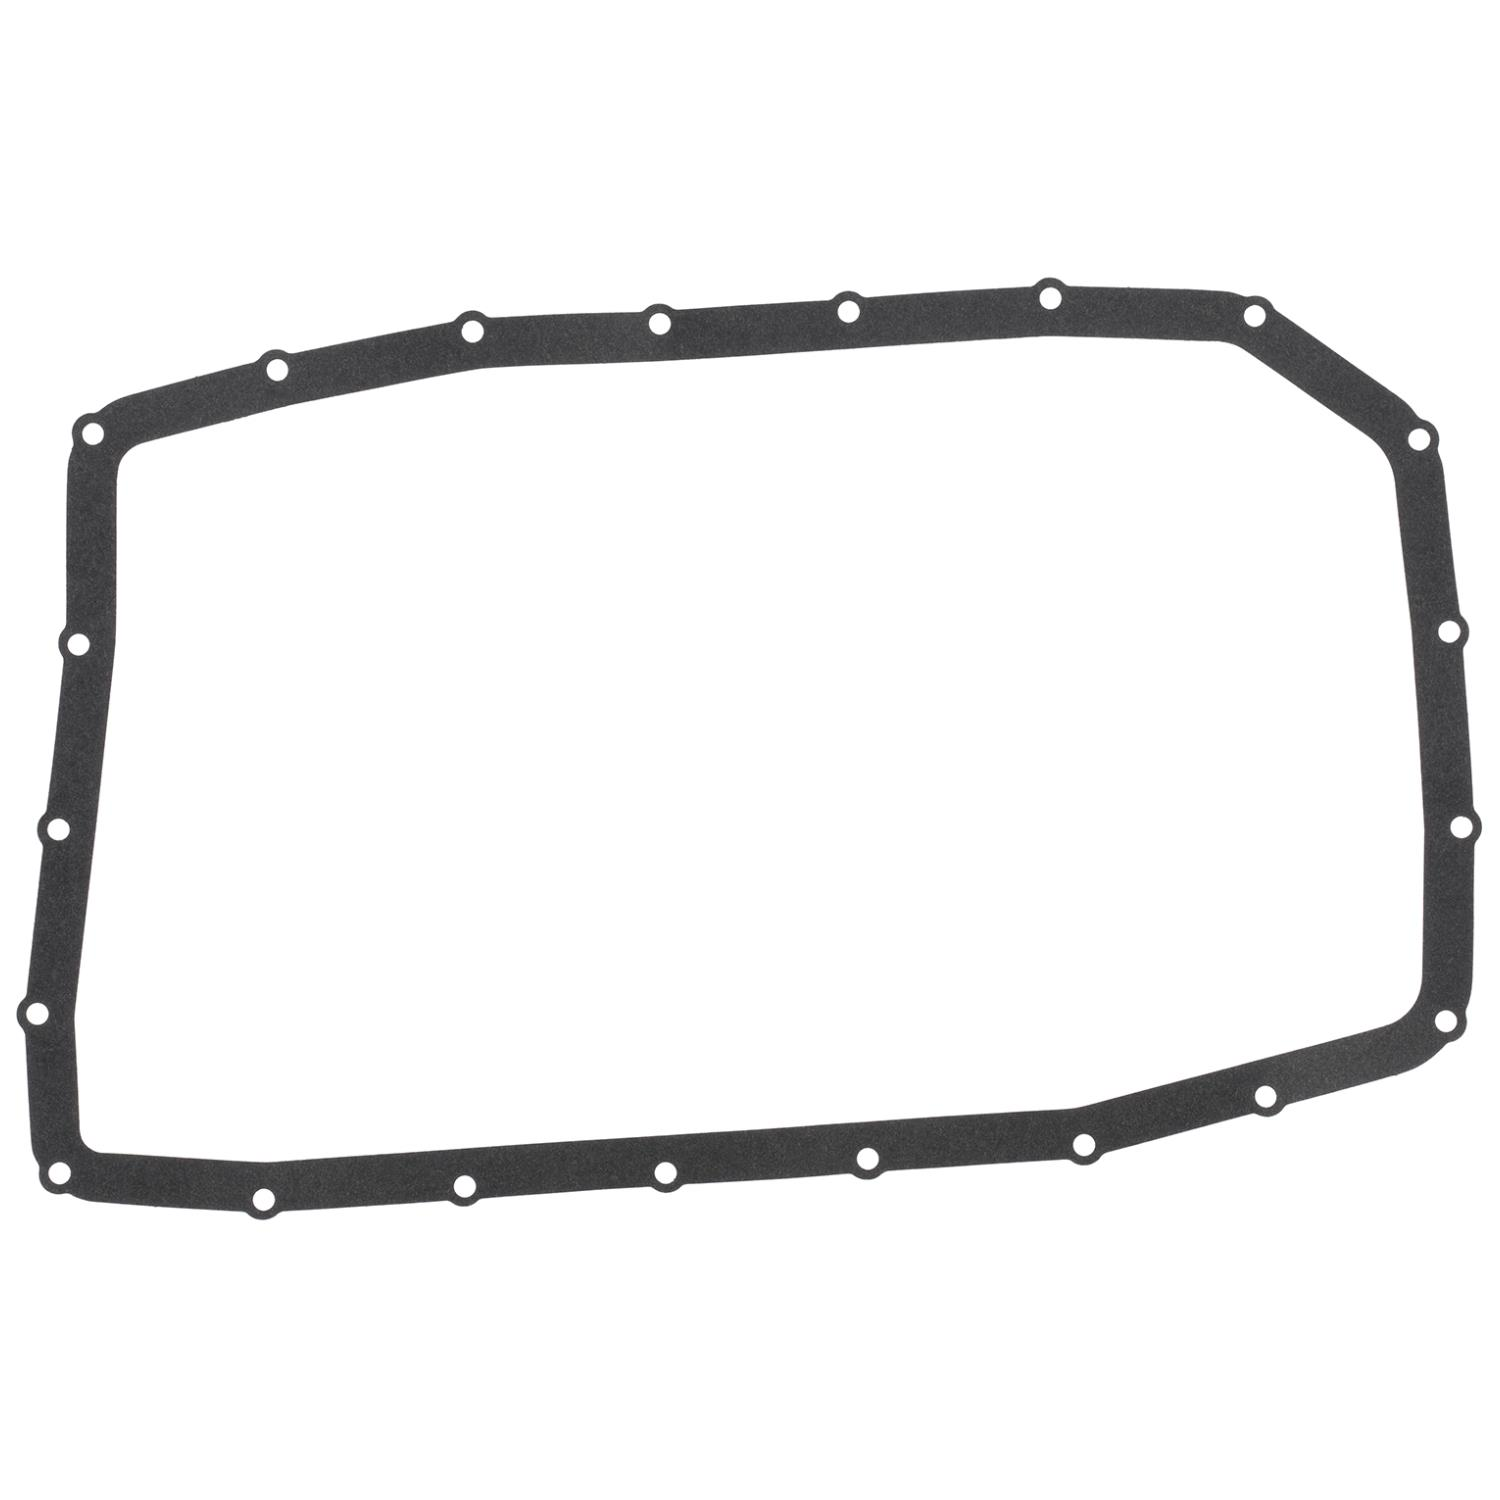 ATP Automotive FG-28 Oil Pan Gasket